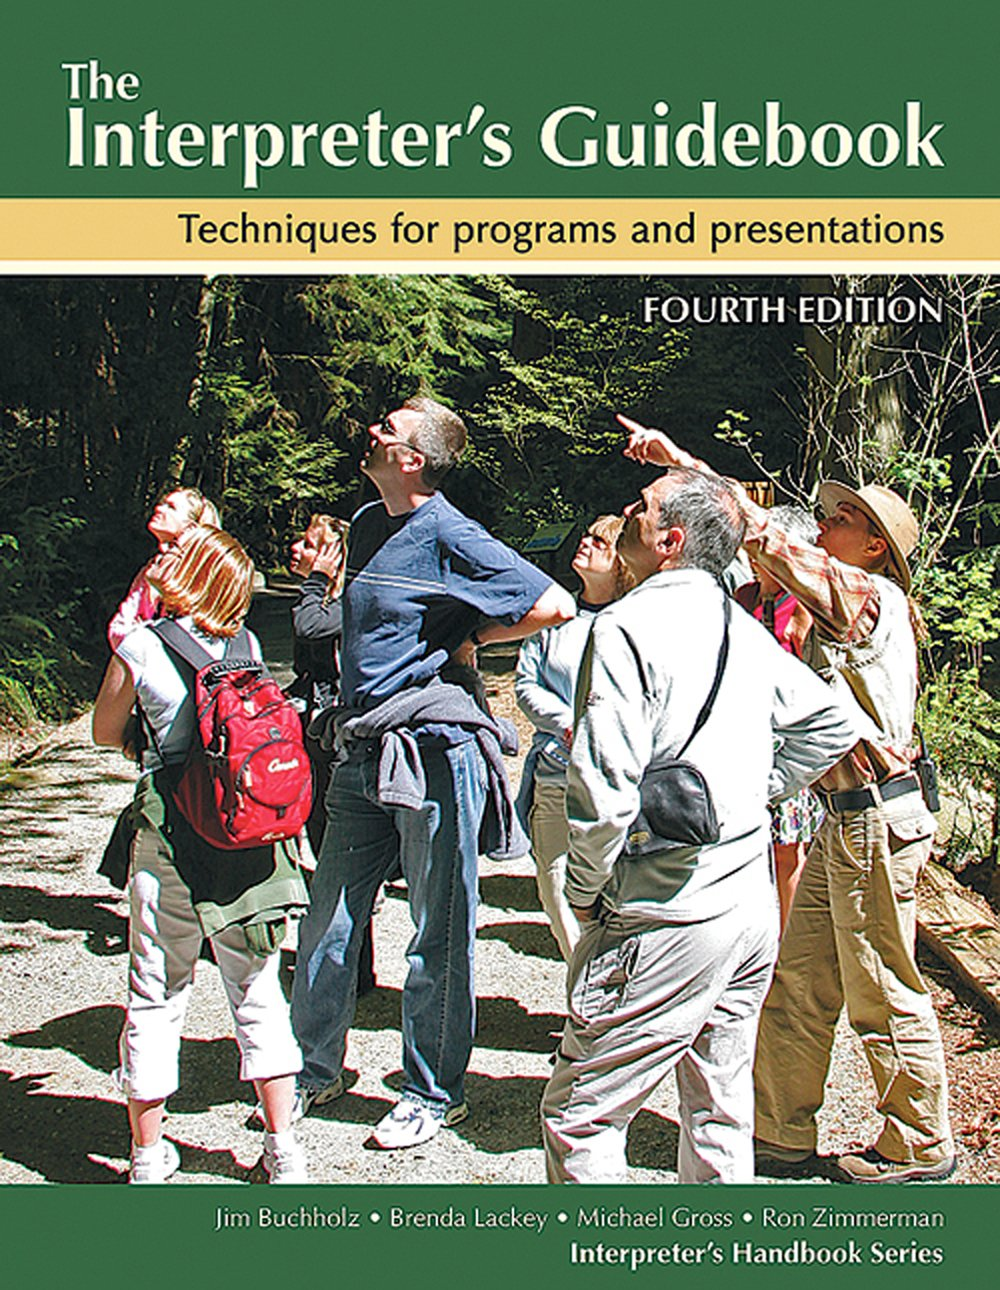 Interpreter's Guidebook (The): Techniques for Programs and Presentations (4th Edition)